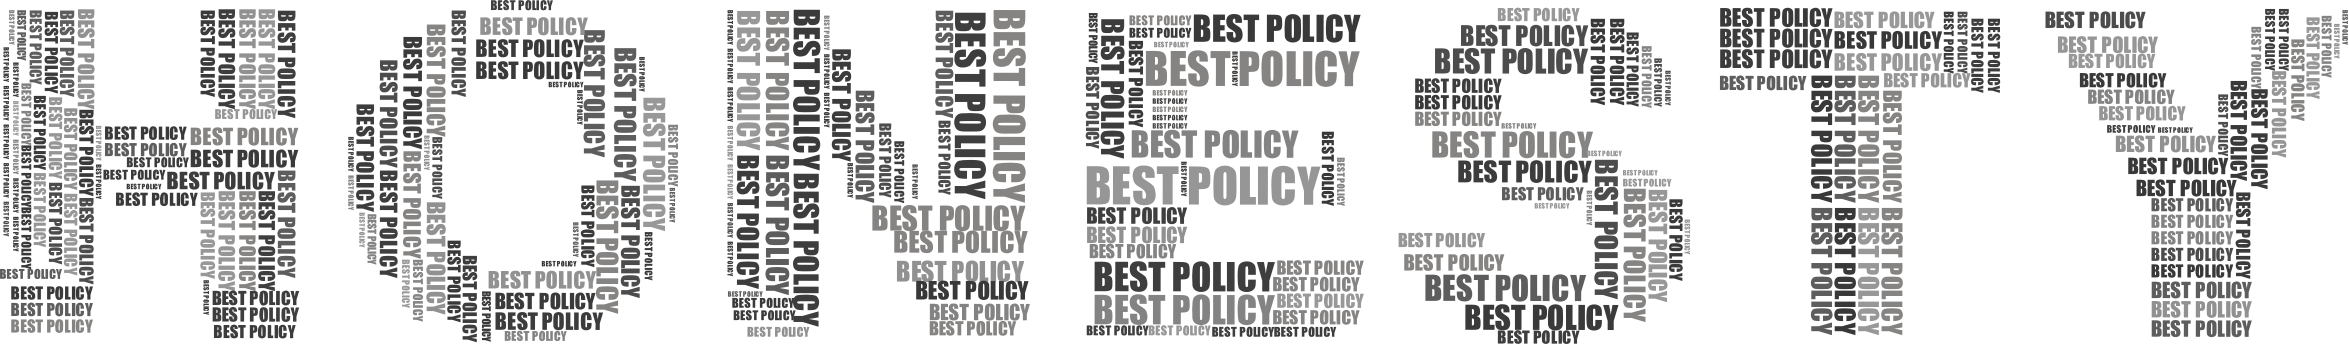 Best Policy Grayscale by GDJ